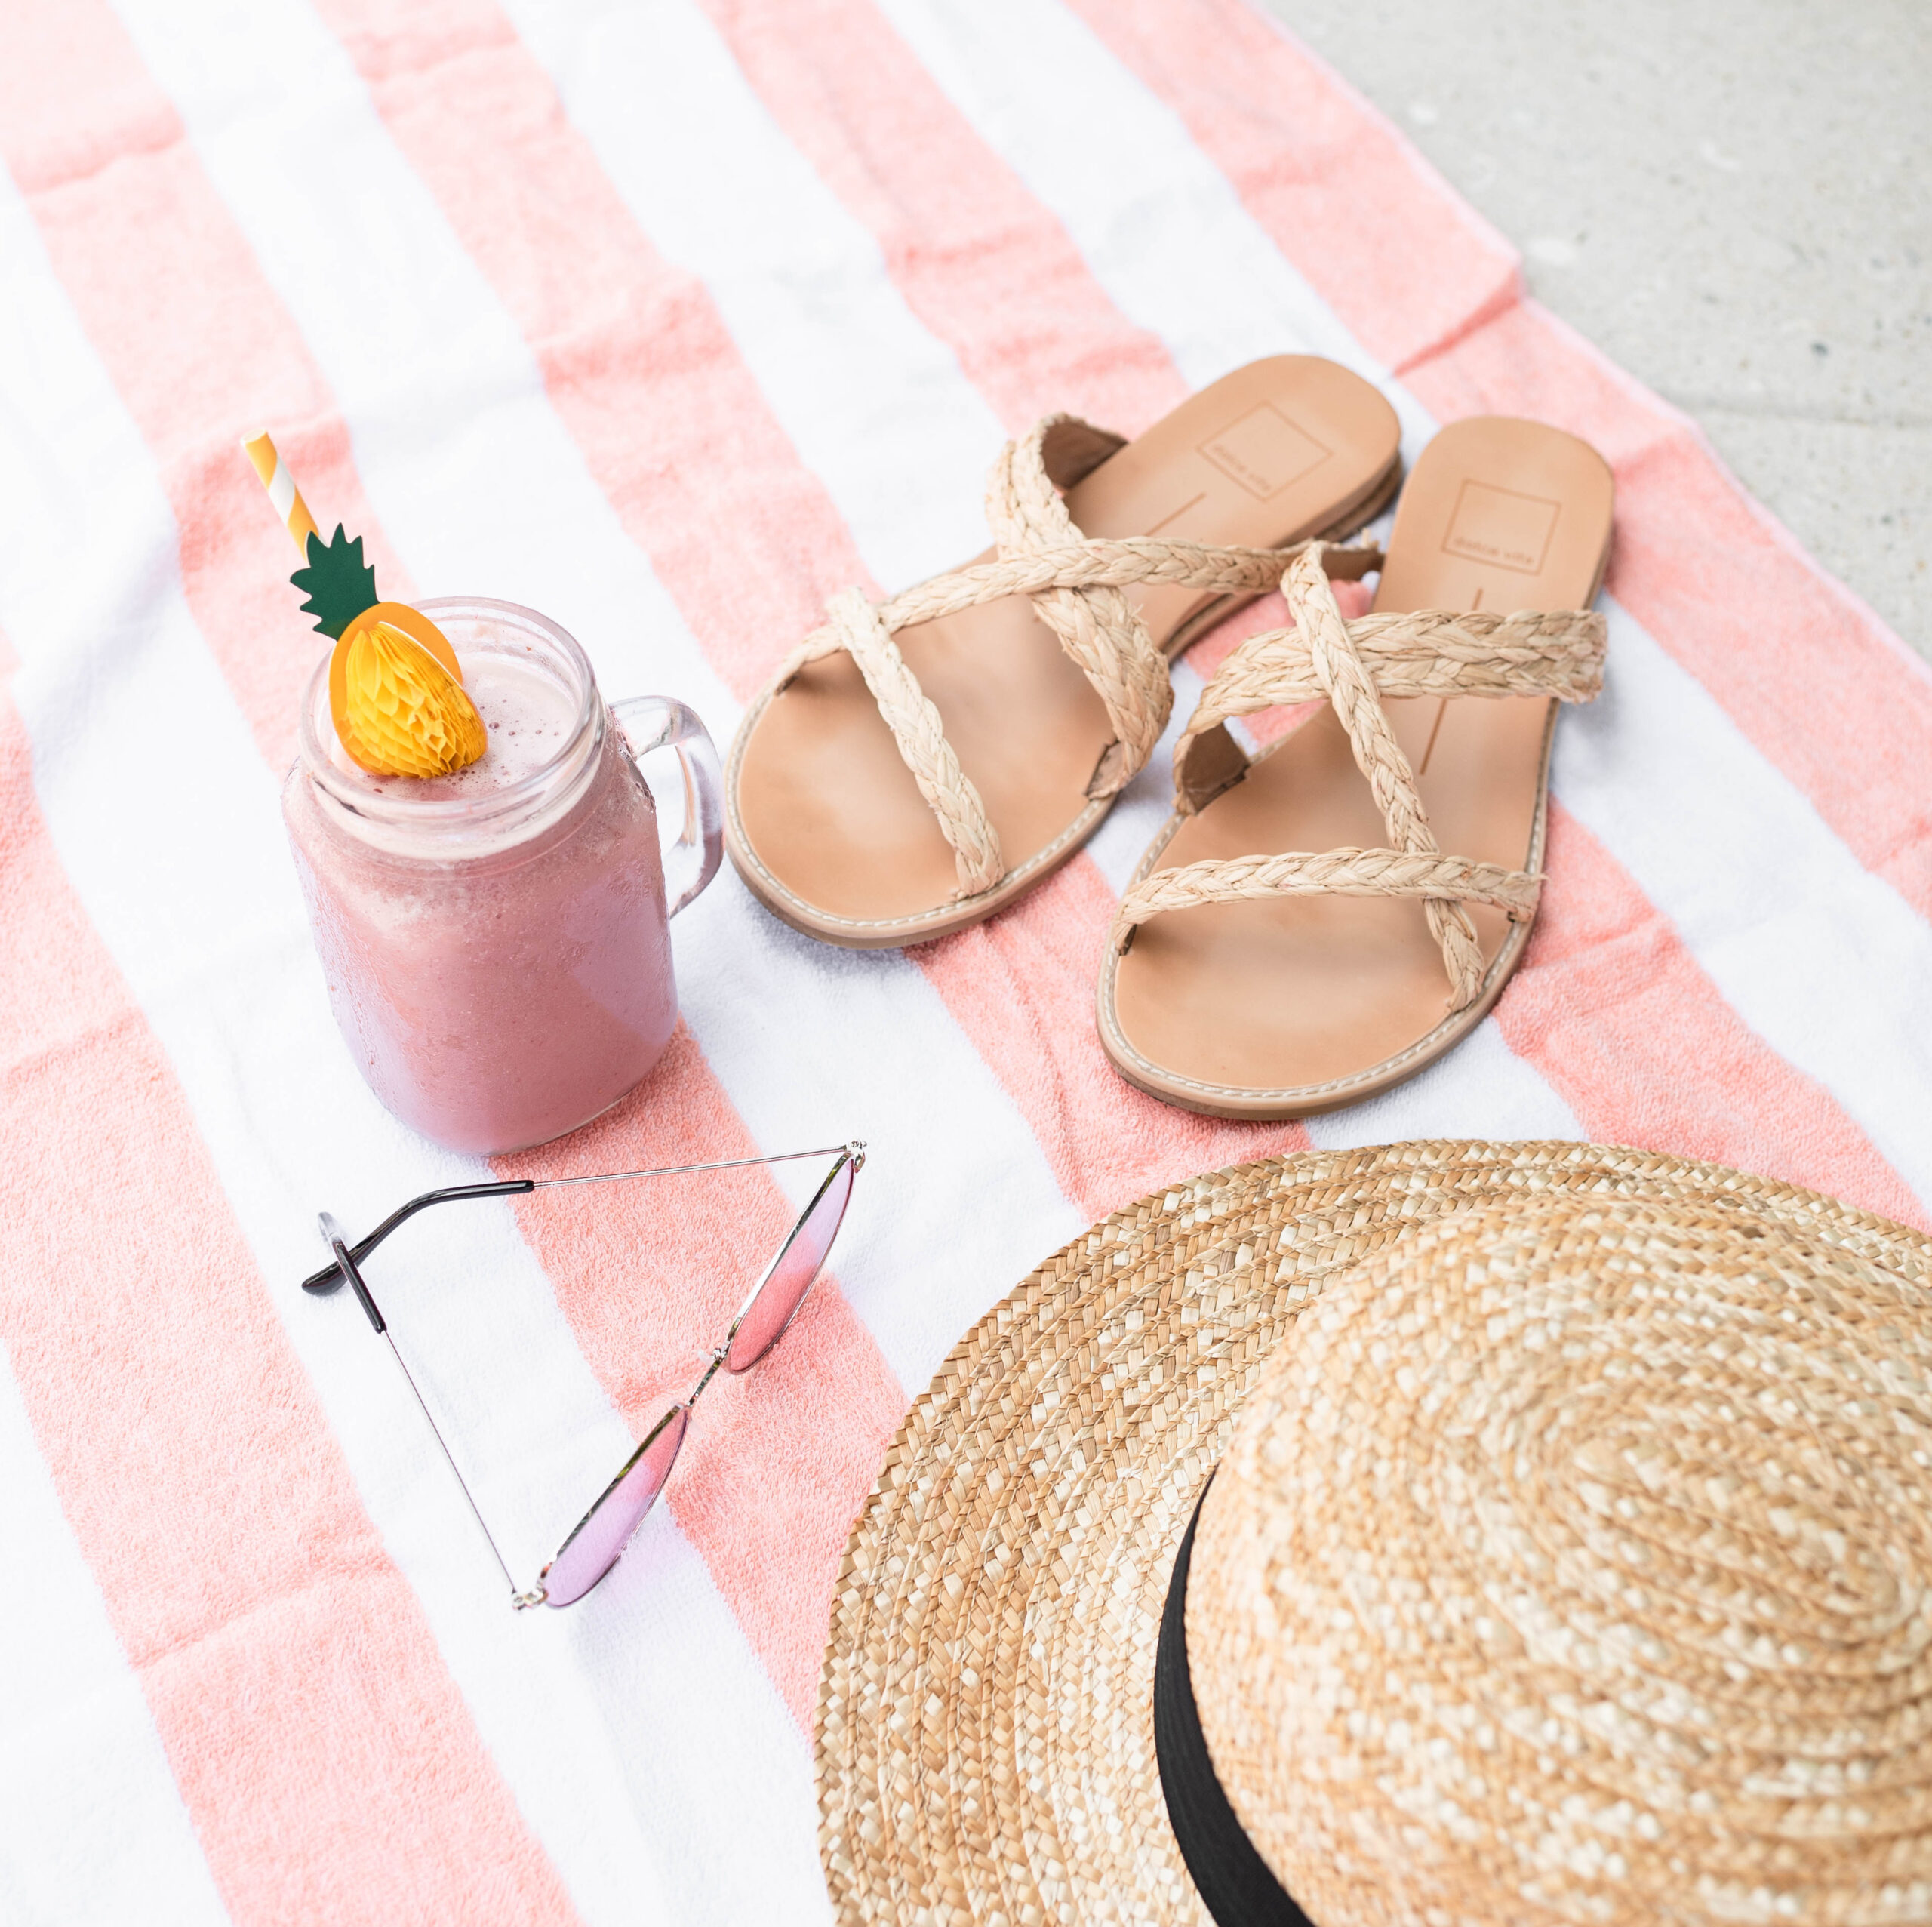 summer loook, slippers, smoothie and a hat, life update about moving, graduating and freelancing